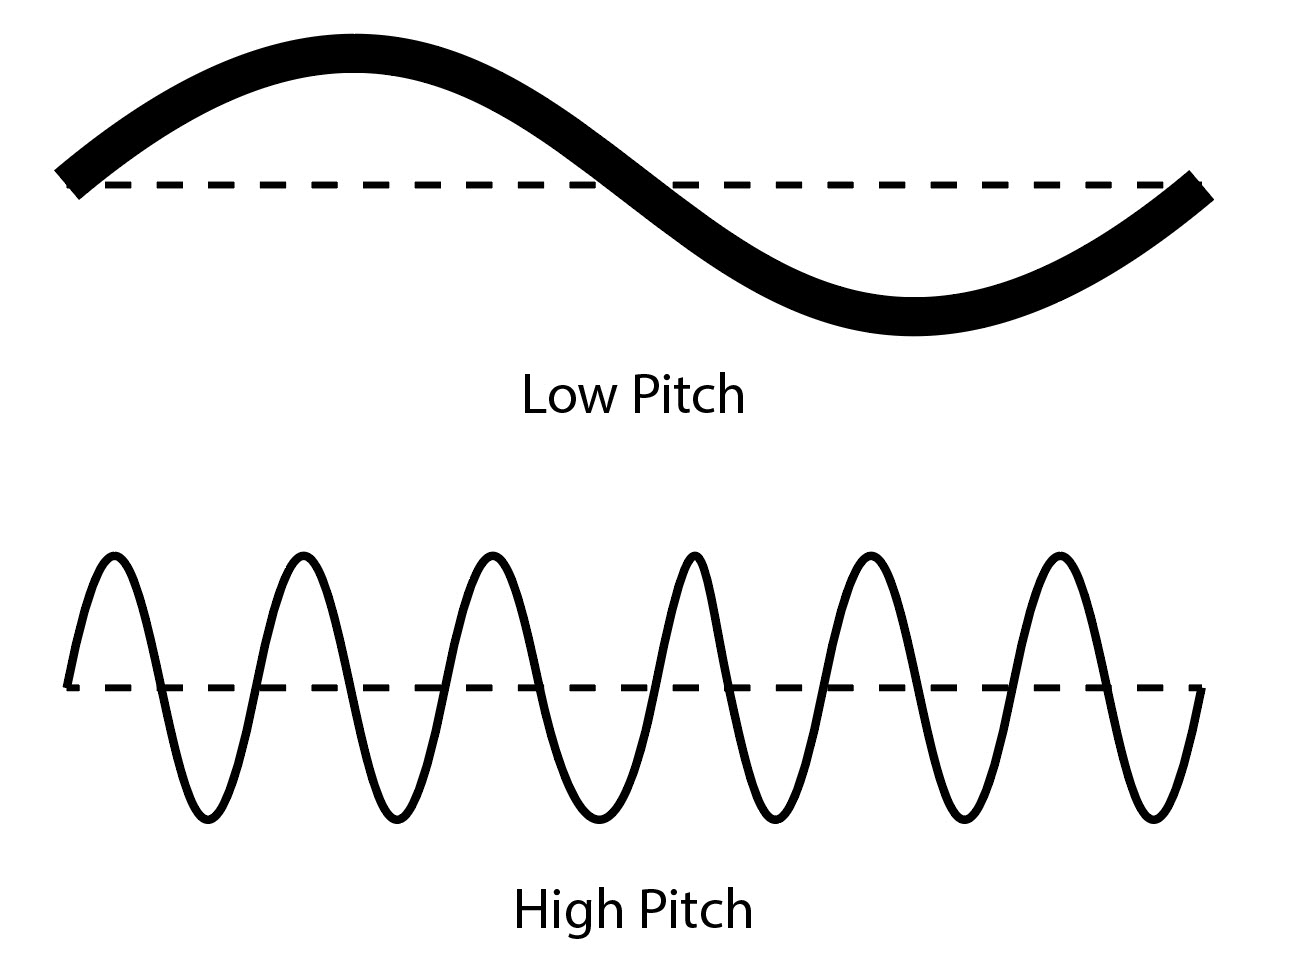 Low Pitch vs High Pitch Waveform